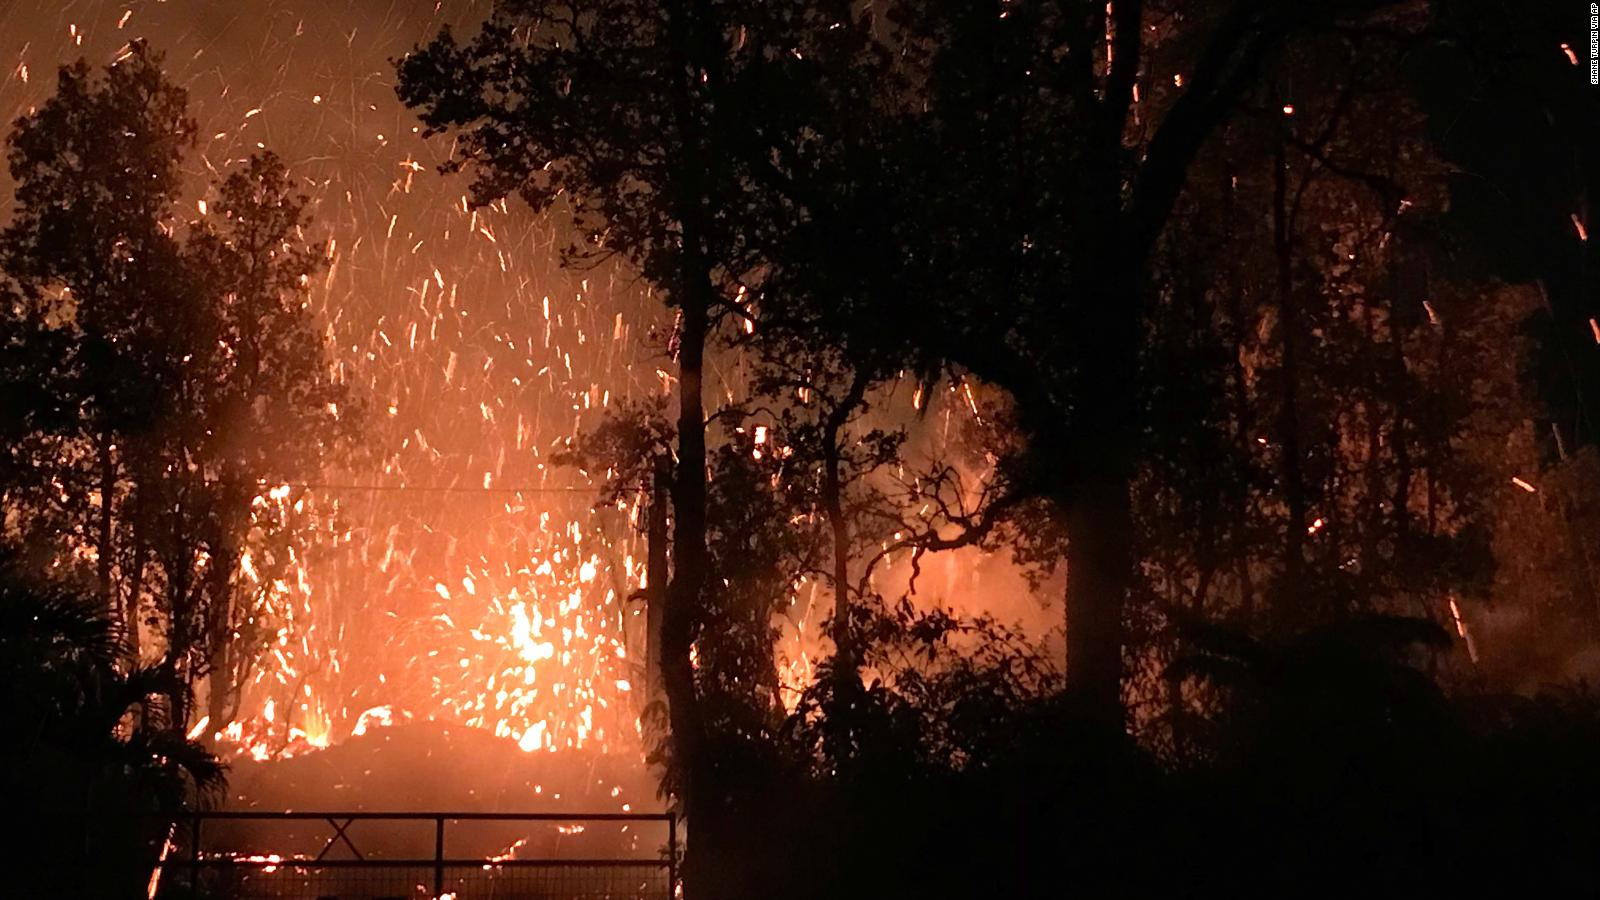 Dainty Fire Download Home Free Ring Kilauea Volcano Residents On Big Island Flee Threat Of Fire Live Toxic Gas Cnn Kilauea Volcano Residents On Big Island Flee Threat Home Free Ring curbed Home Free Ring Of Fire